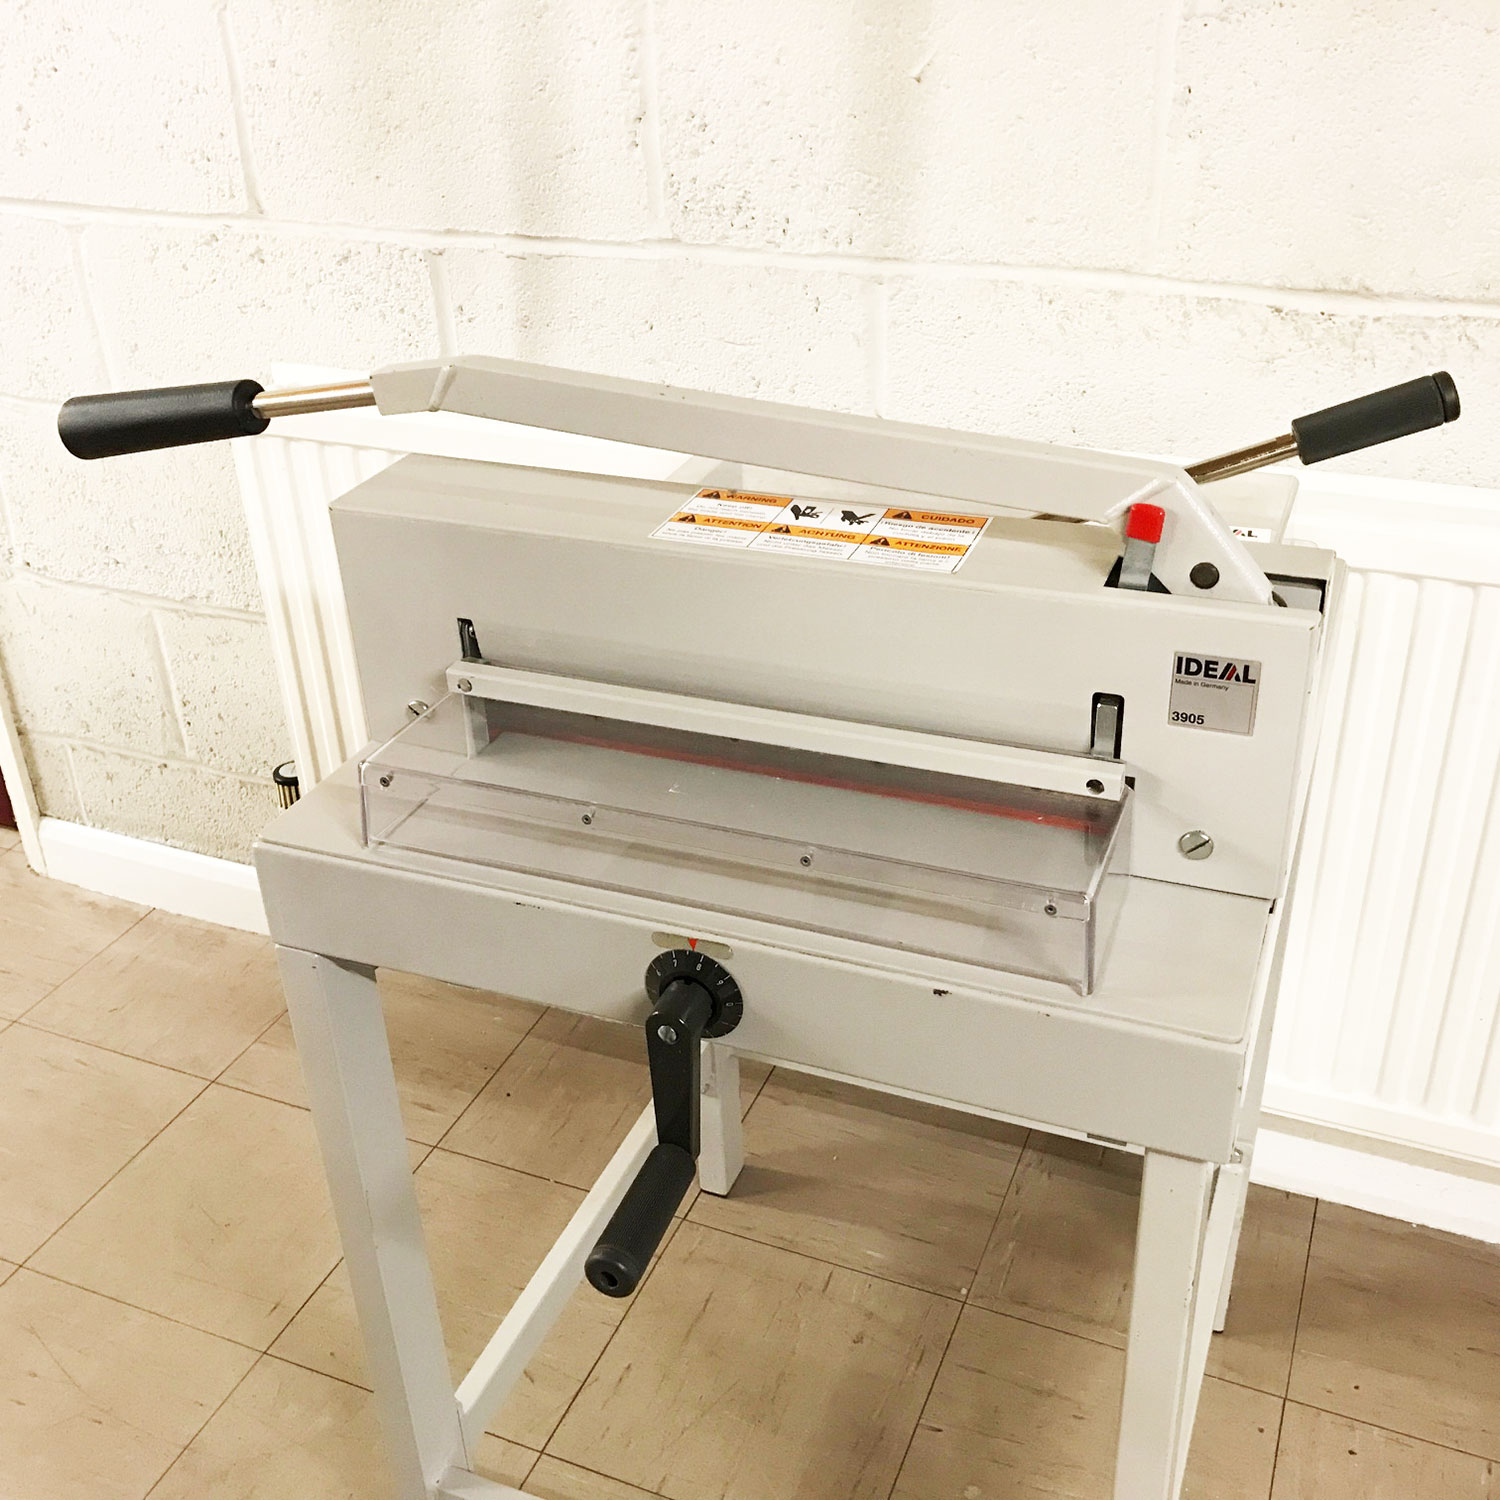 Pre-owned IDEAL 3905 Manual Guillotine